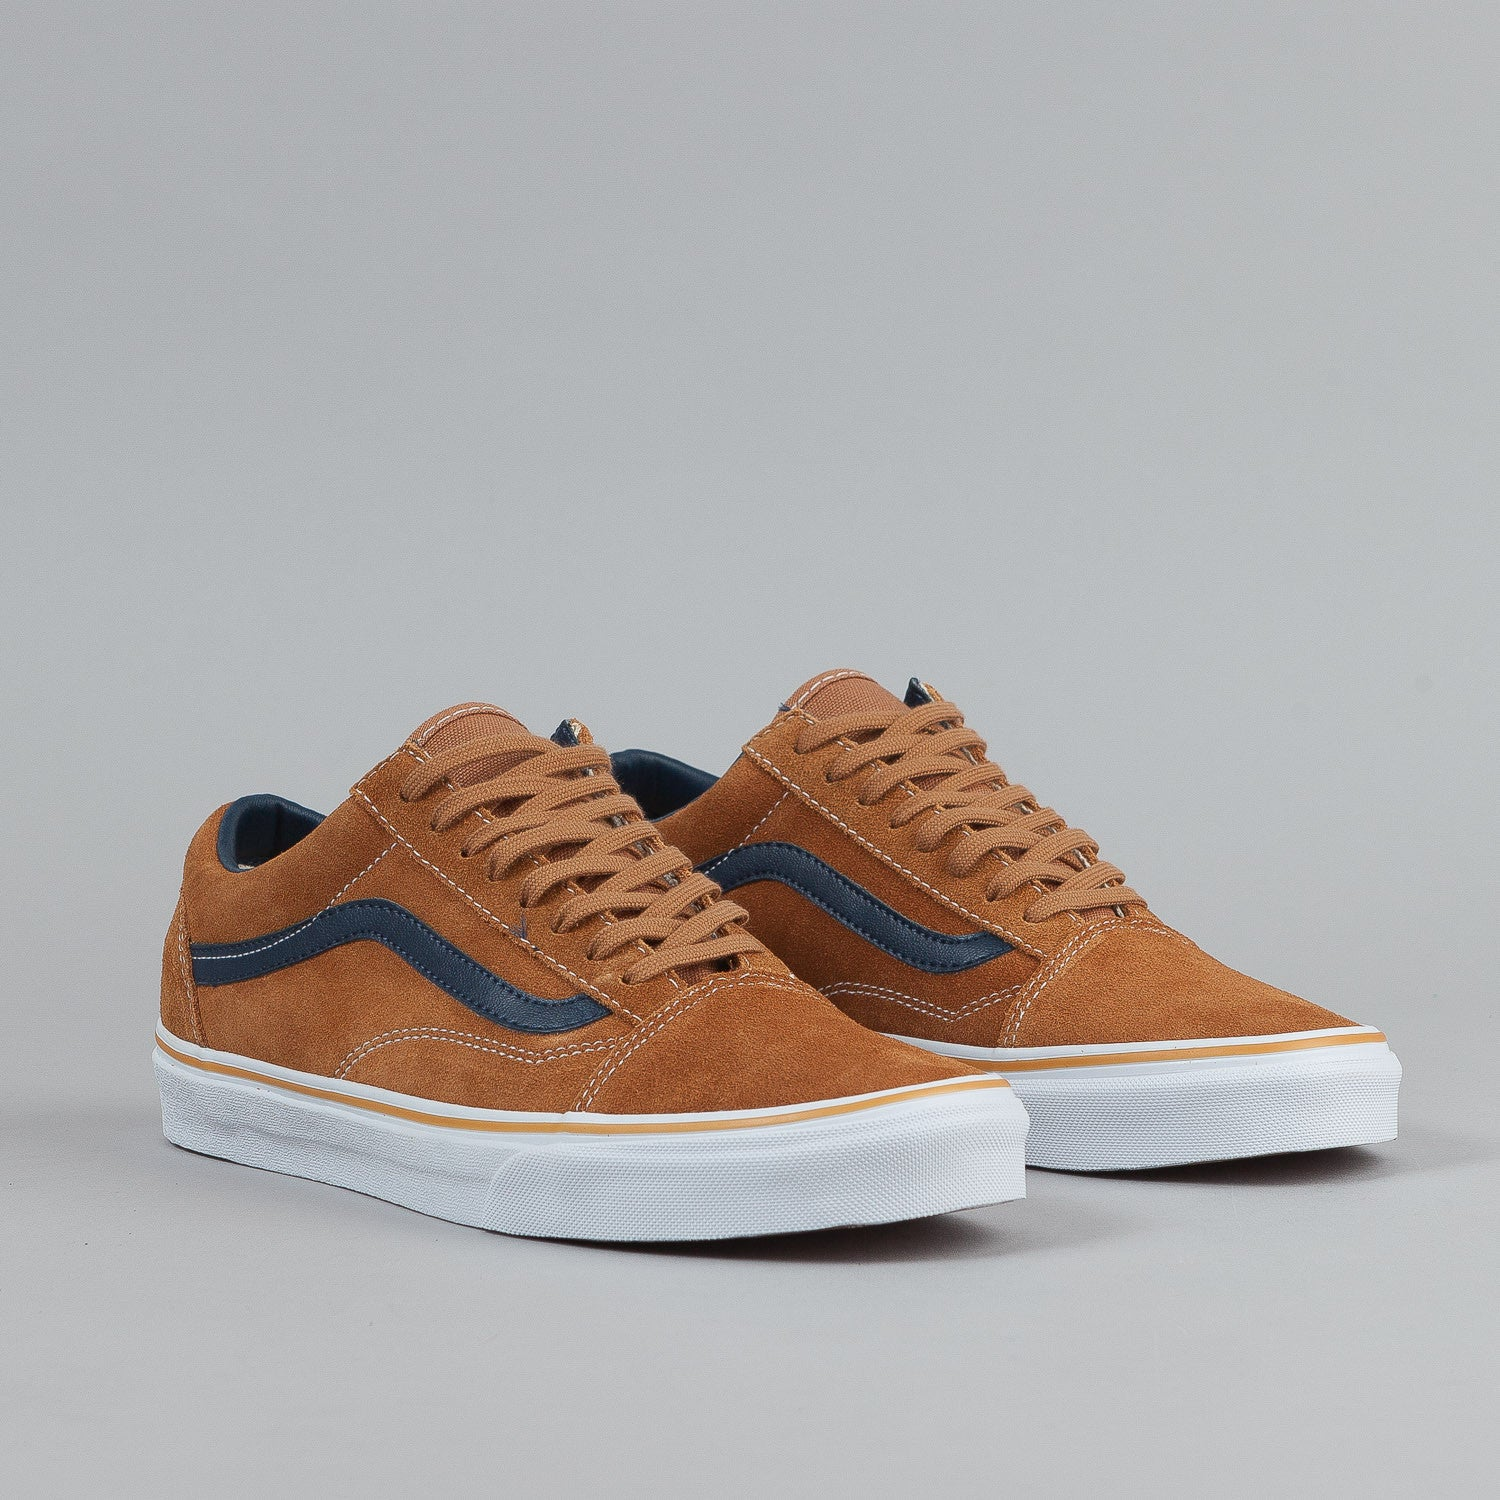 Vans Old Skool Shoes - Brown Sugar